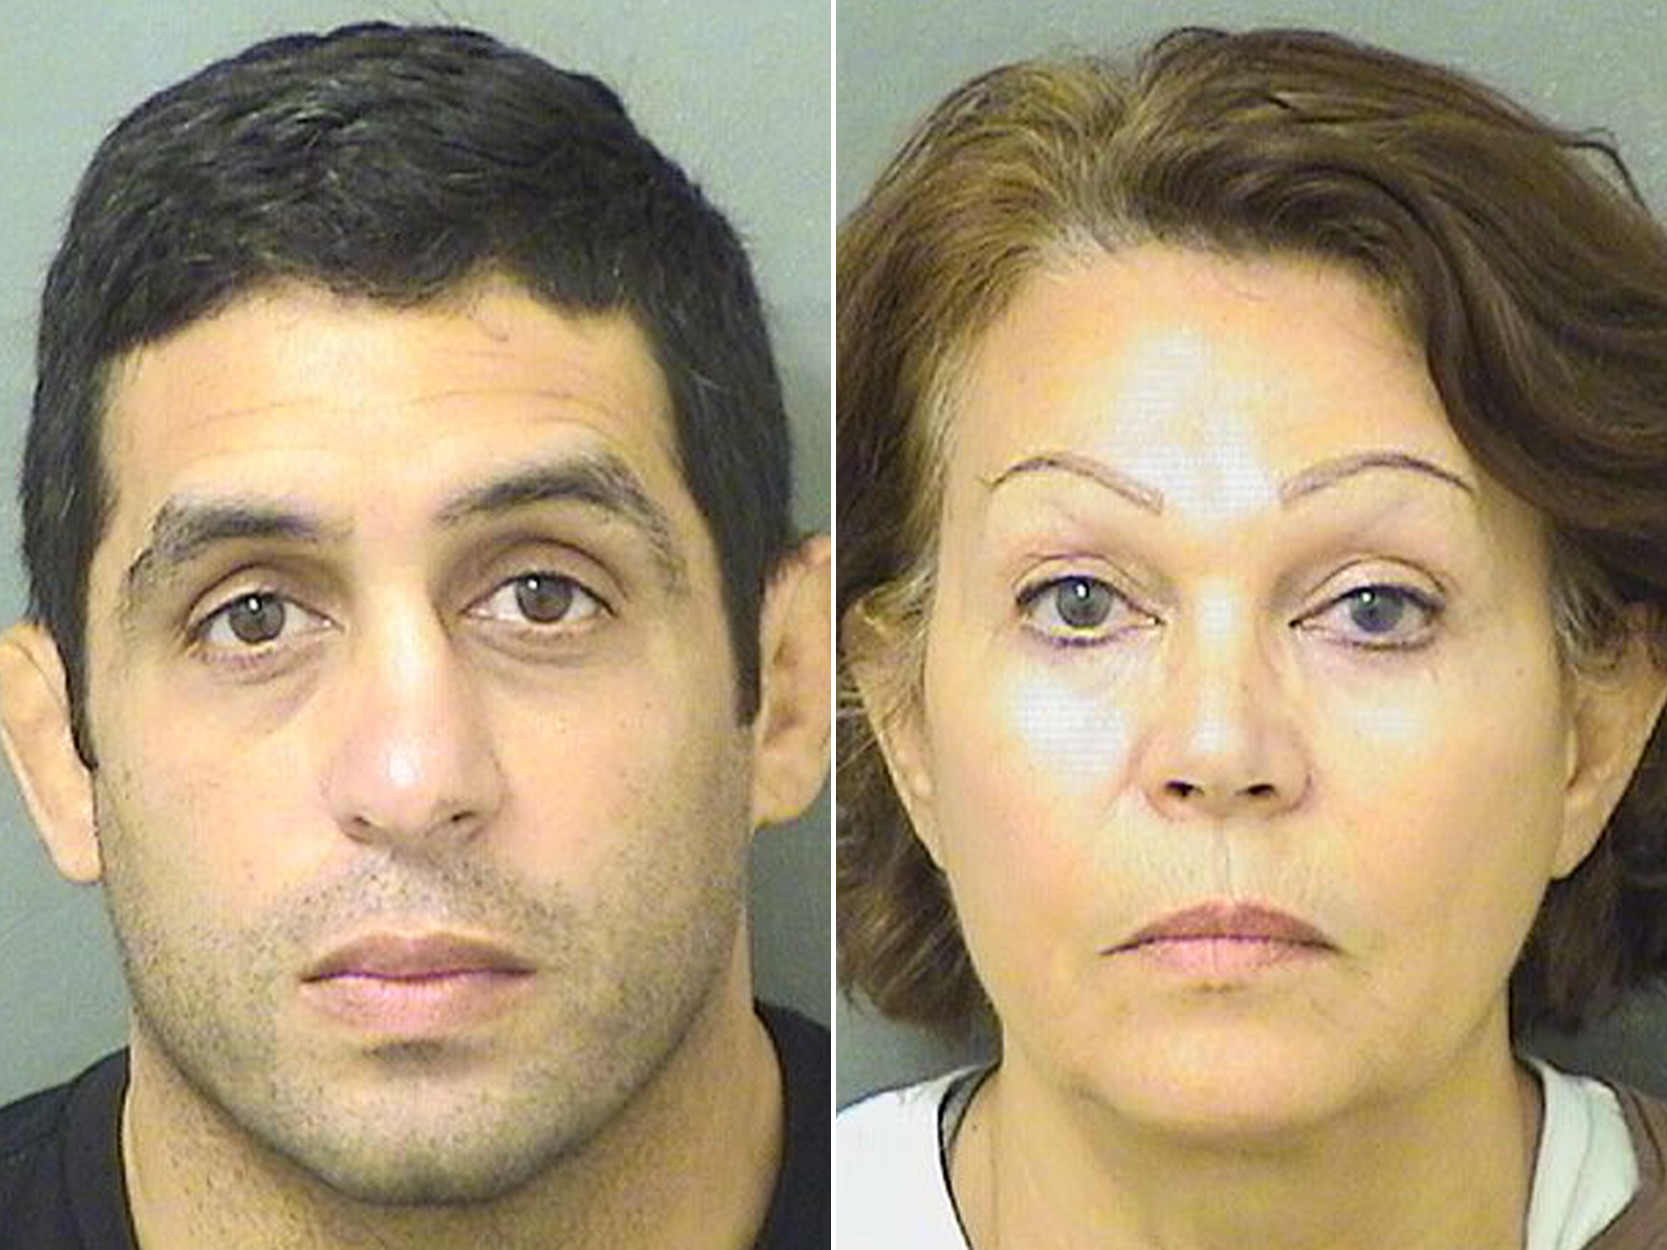 Mother and son indicted for murders of two people in 25-year-old New Jersey cold case